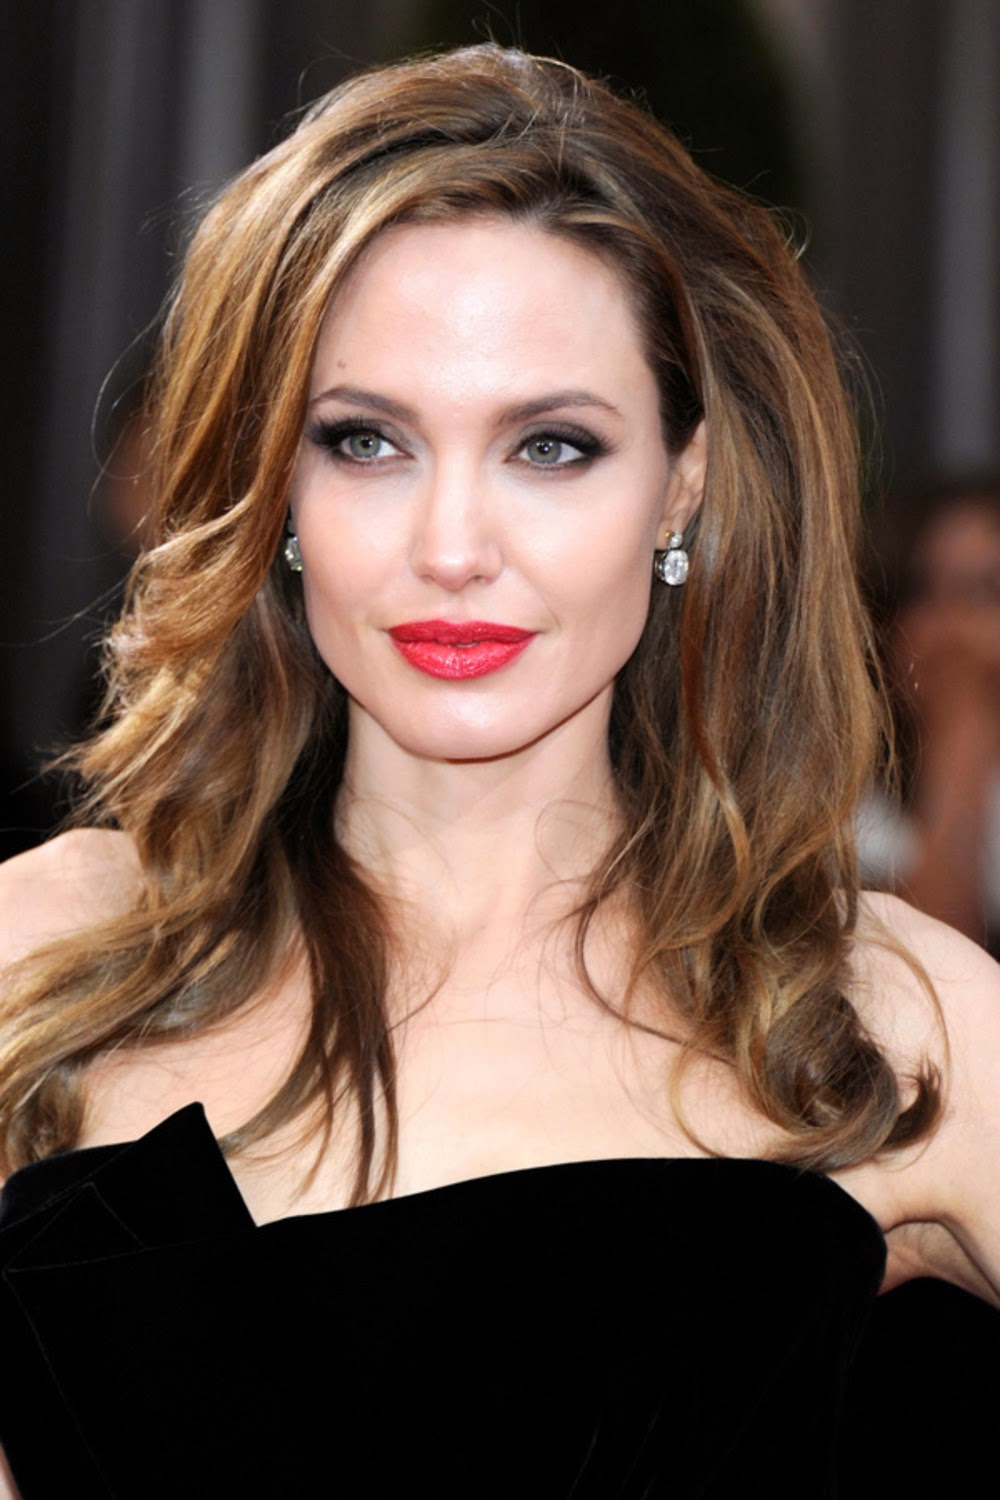 Angelina Jolie Biography| Profile| Pictures| News